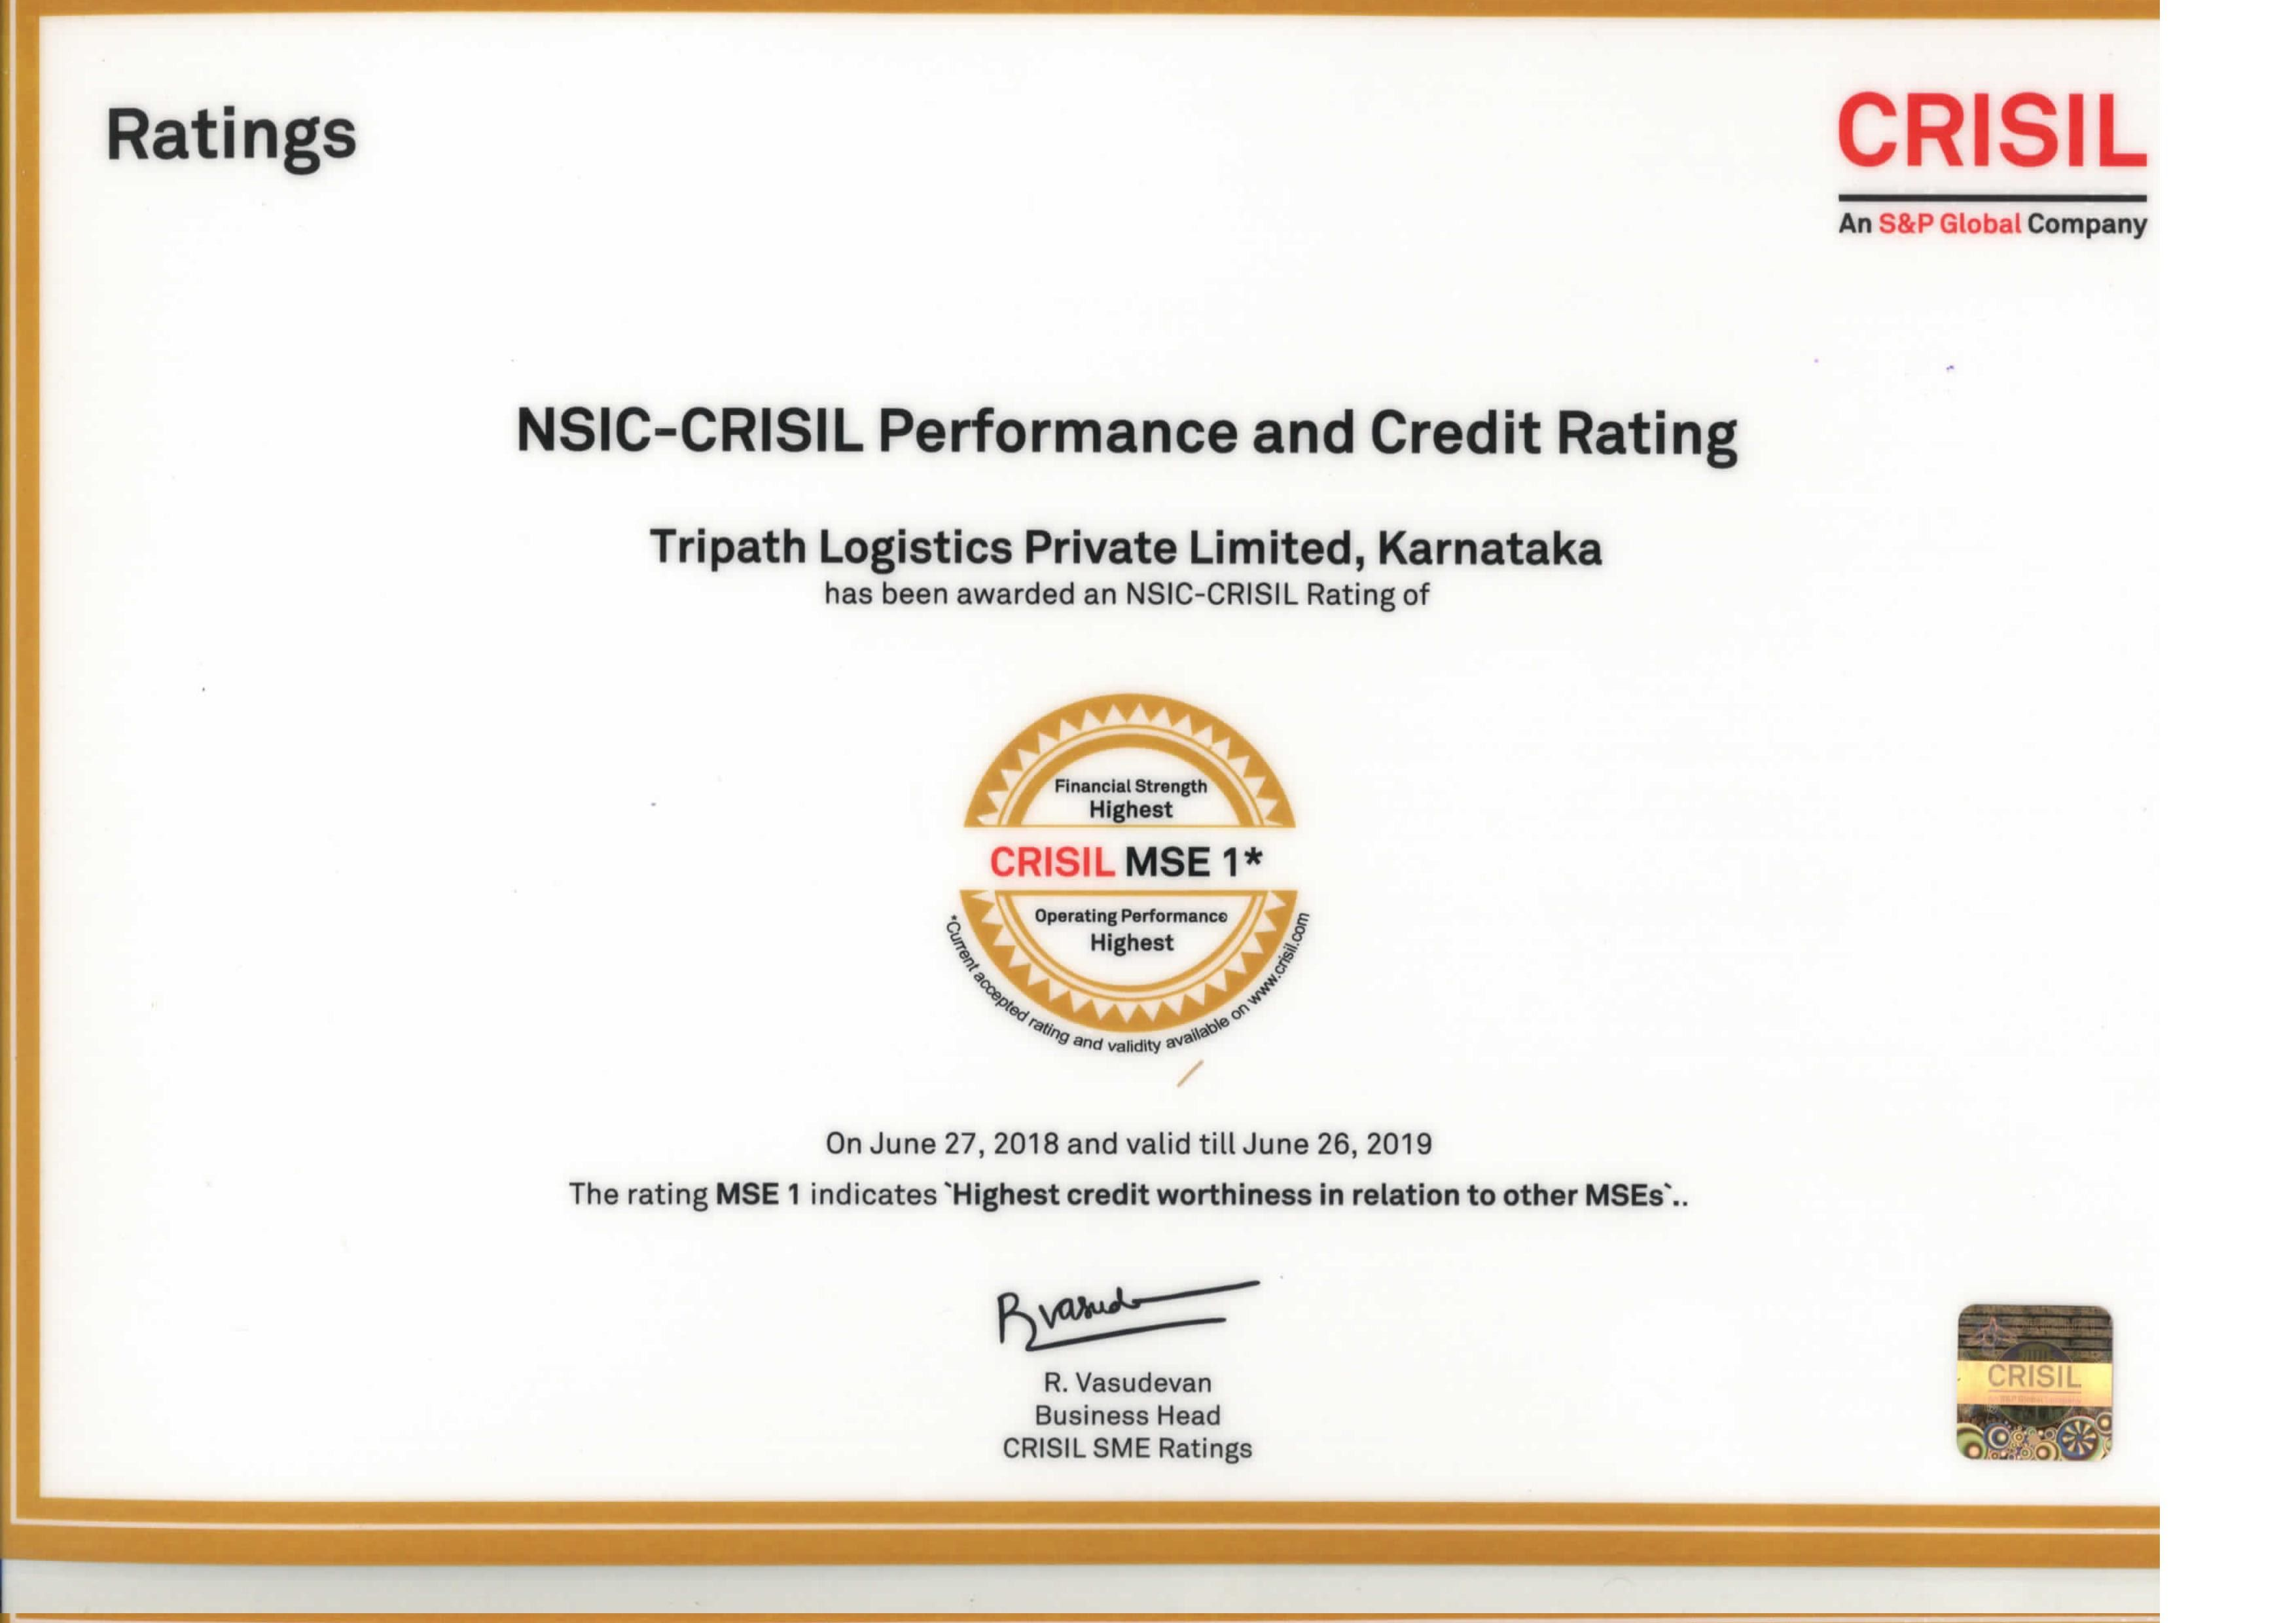 It S A Great Honour Tripathlogistics Have Been Rated The